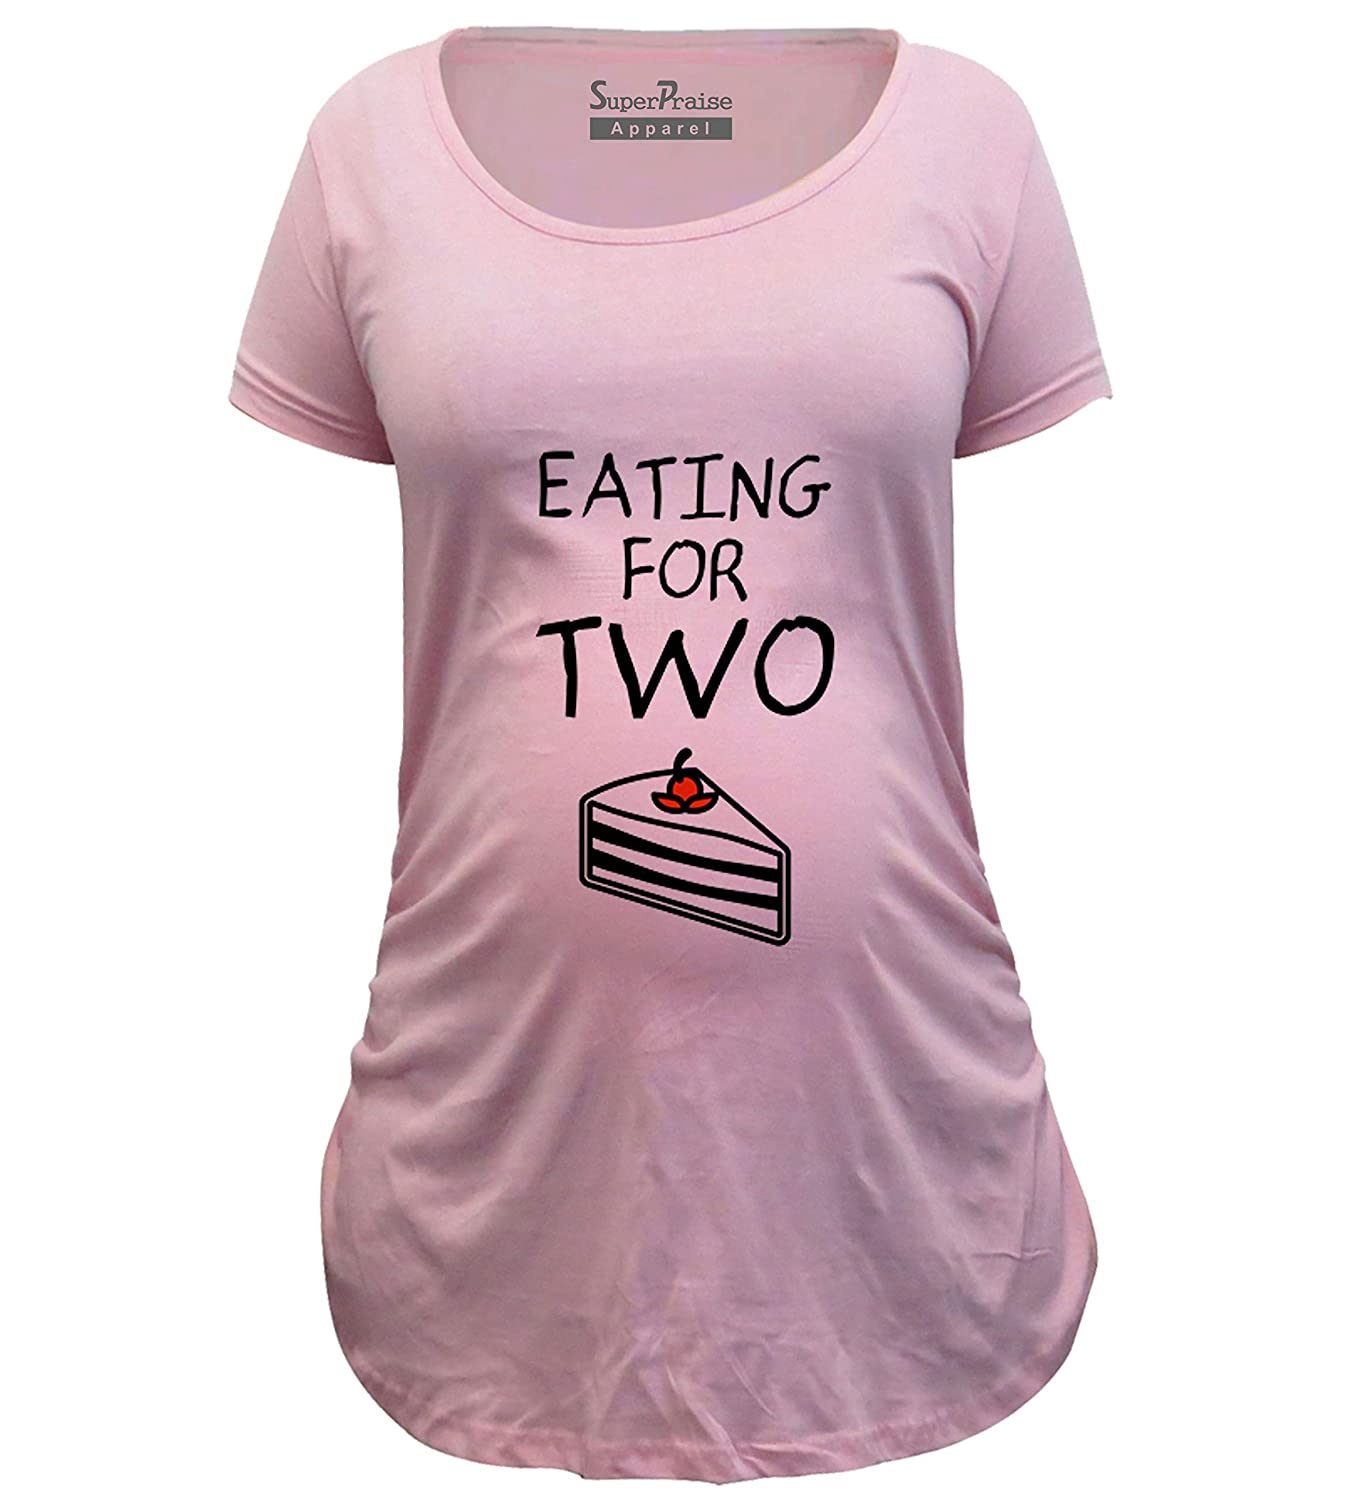 Short Sleeve Maternity Top Size 12 14 /& 16 Pink